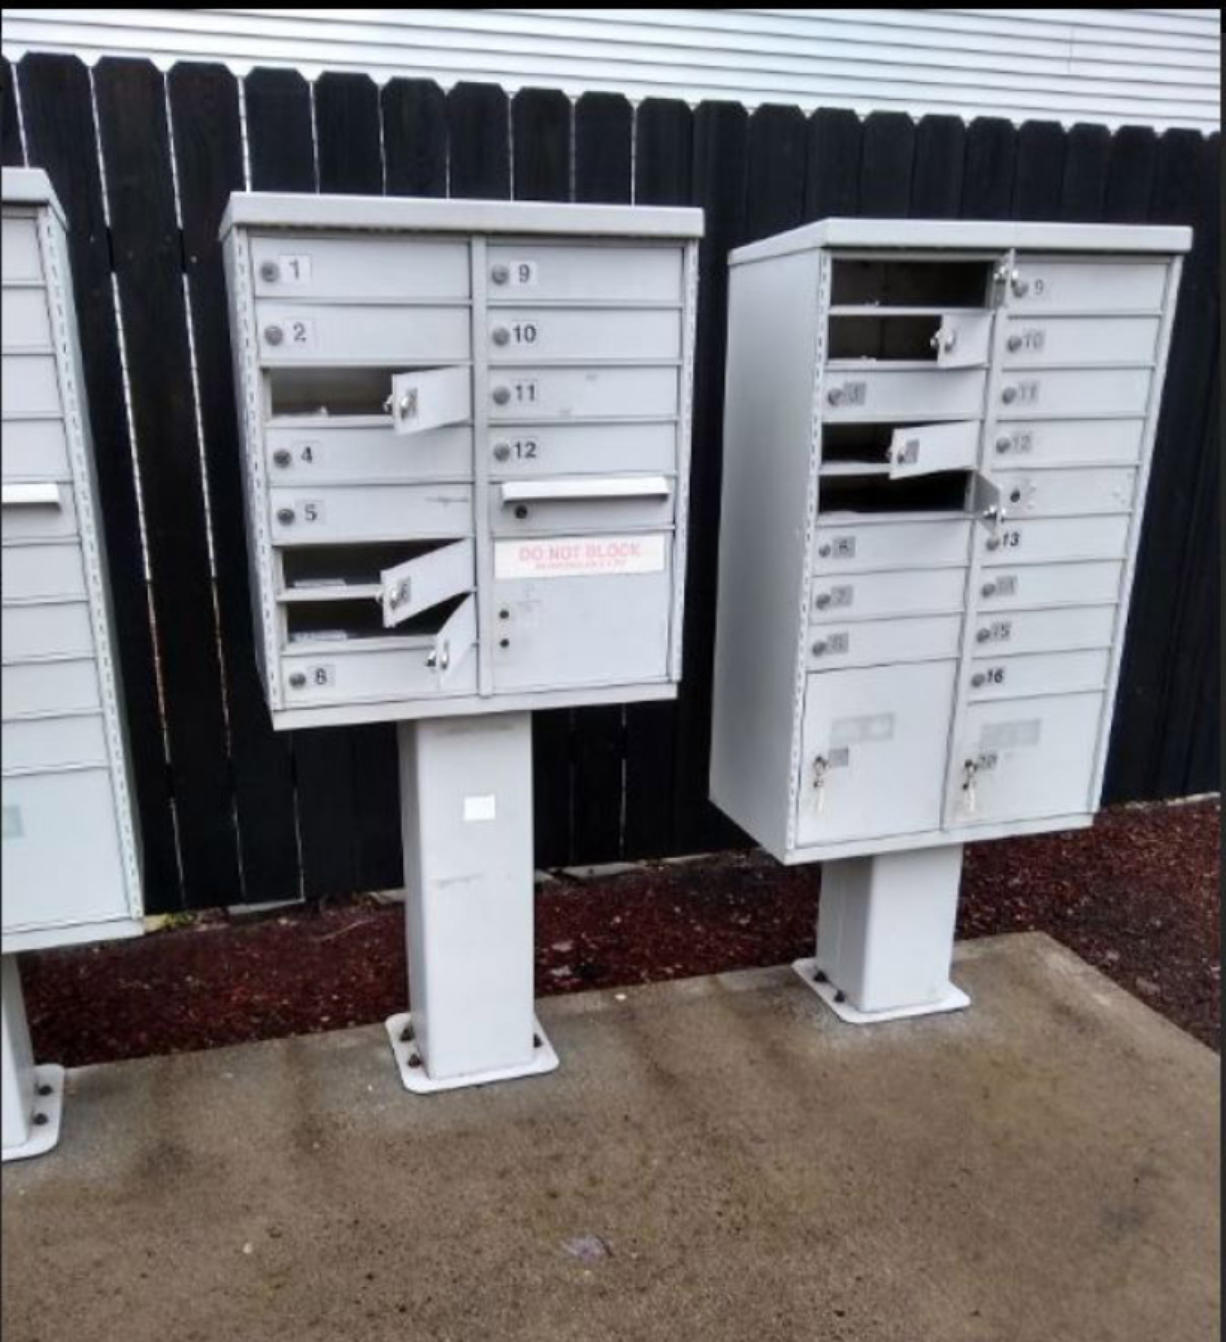 In late January, a thief or thieves busted open two cluster mailboxes using tools in a subdivision in the Heritage area, northeast of Vancouver city limits. Law enforcement officials say mail theft is up countywide.